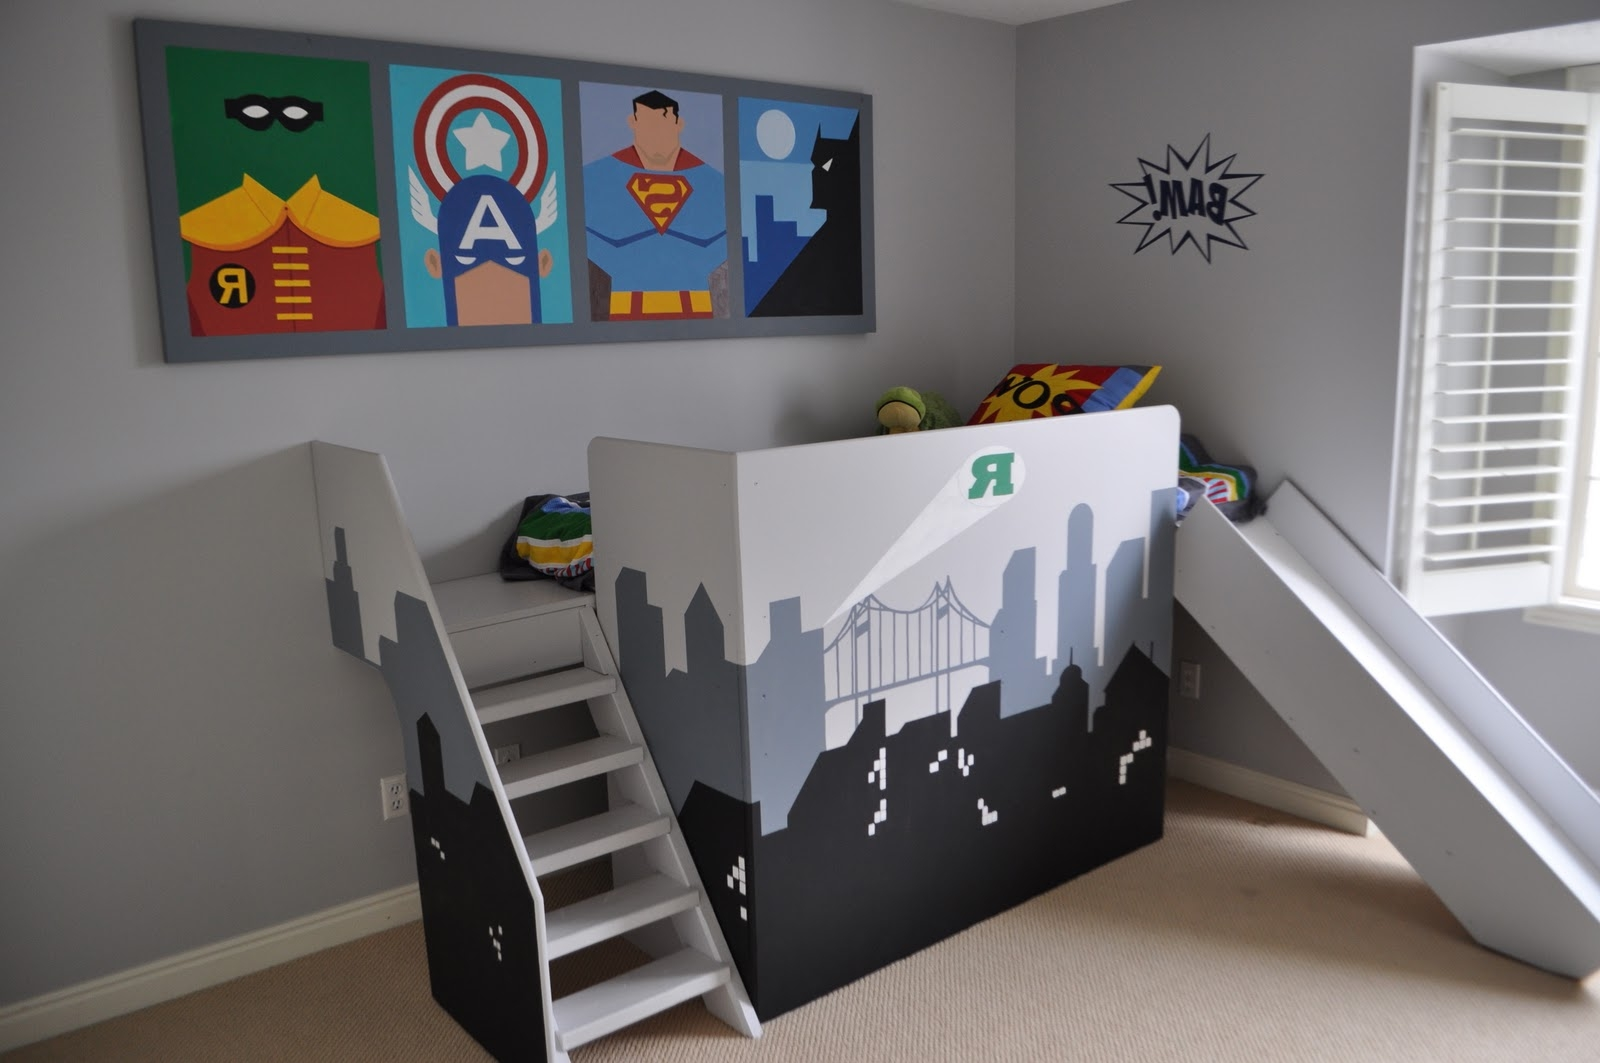 Superhero Themed Bedroom with Unusual Boys Bunk Beds and Appealing Wall Art on Grey Painted Wall